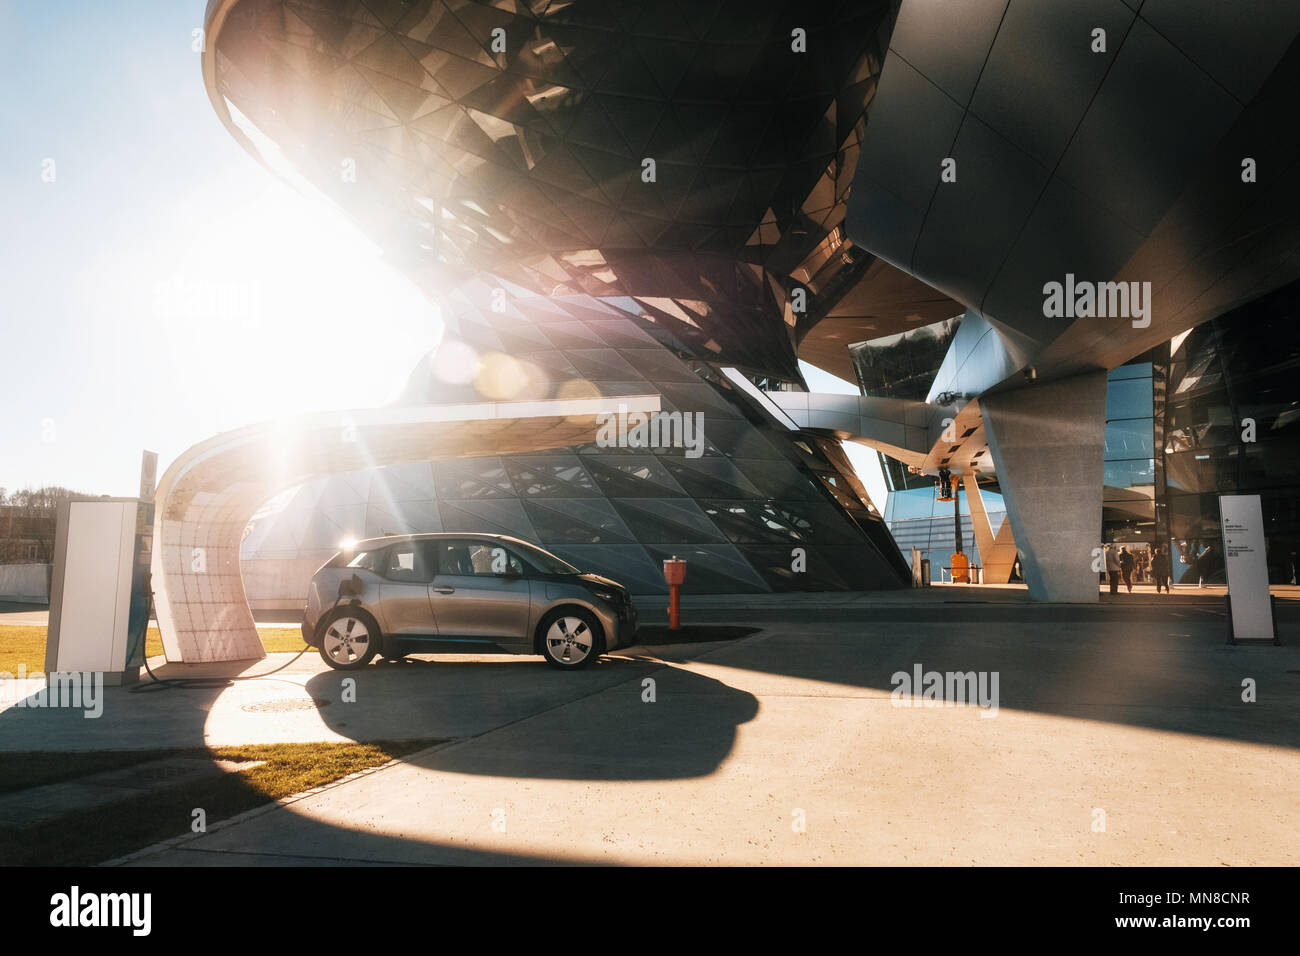 Munich, Germany - December 7, 2017: BMW i3 electric car standing at a charging station at BMW Welt World of BWM with exhibition and museum buildings a - Stock Image